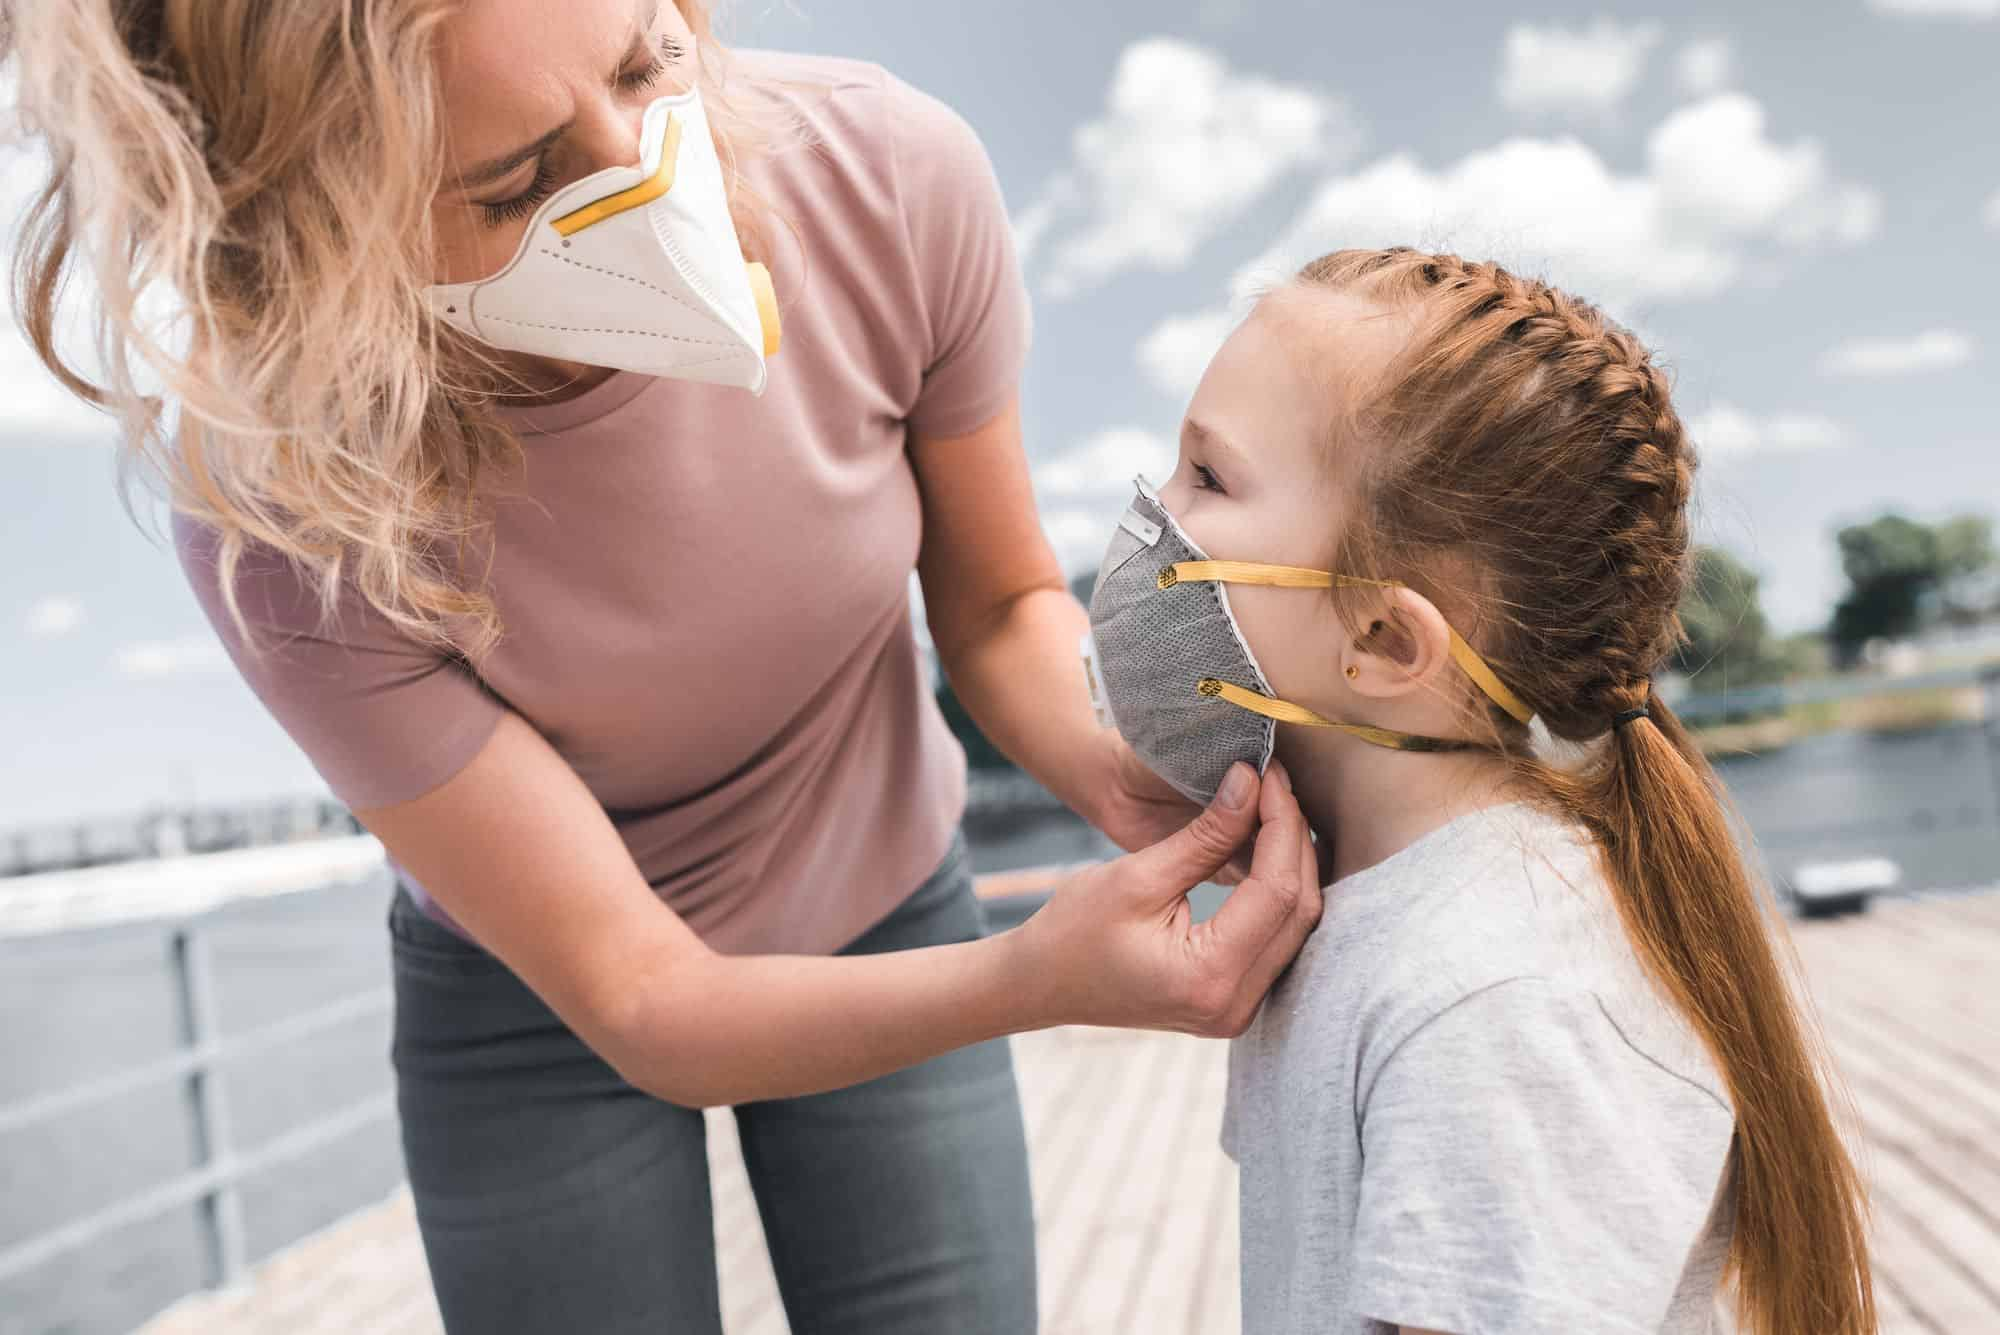 Where to Buy Online an N95 Particulate Respirator Mask